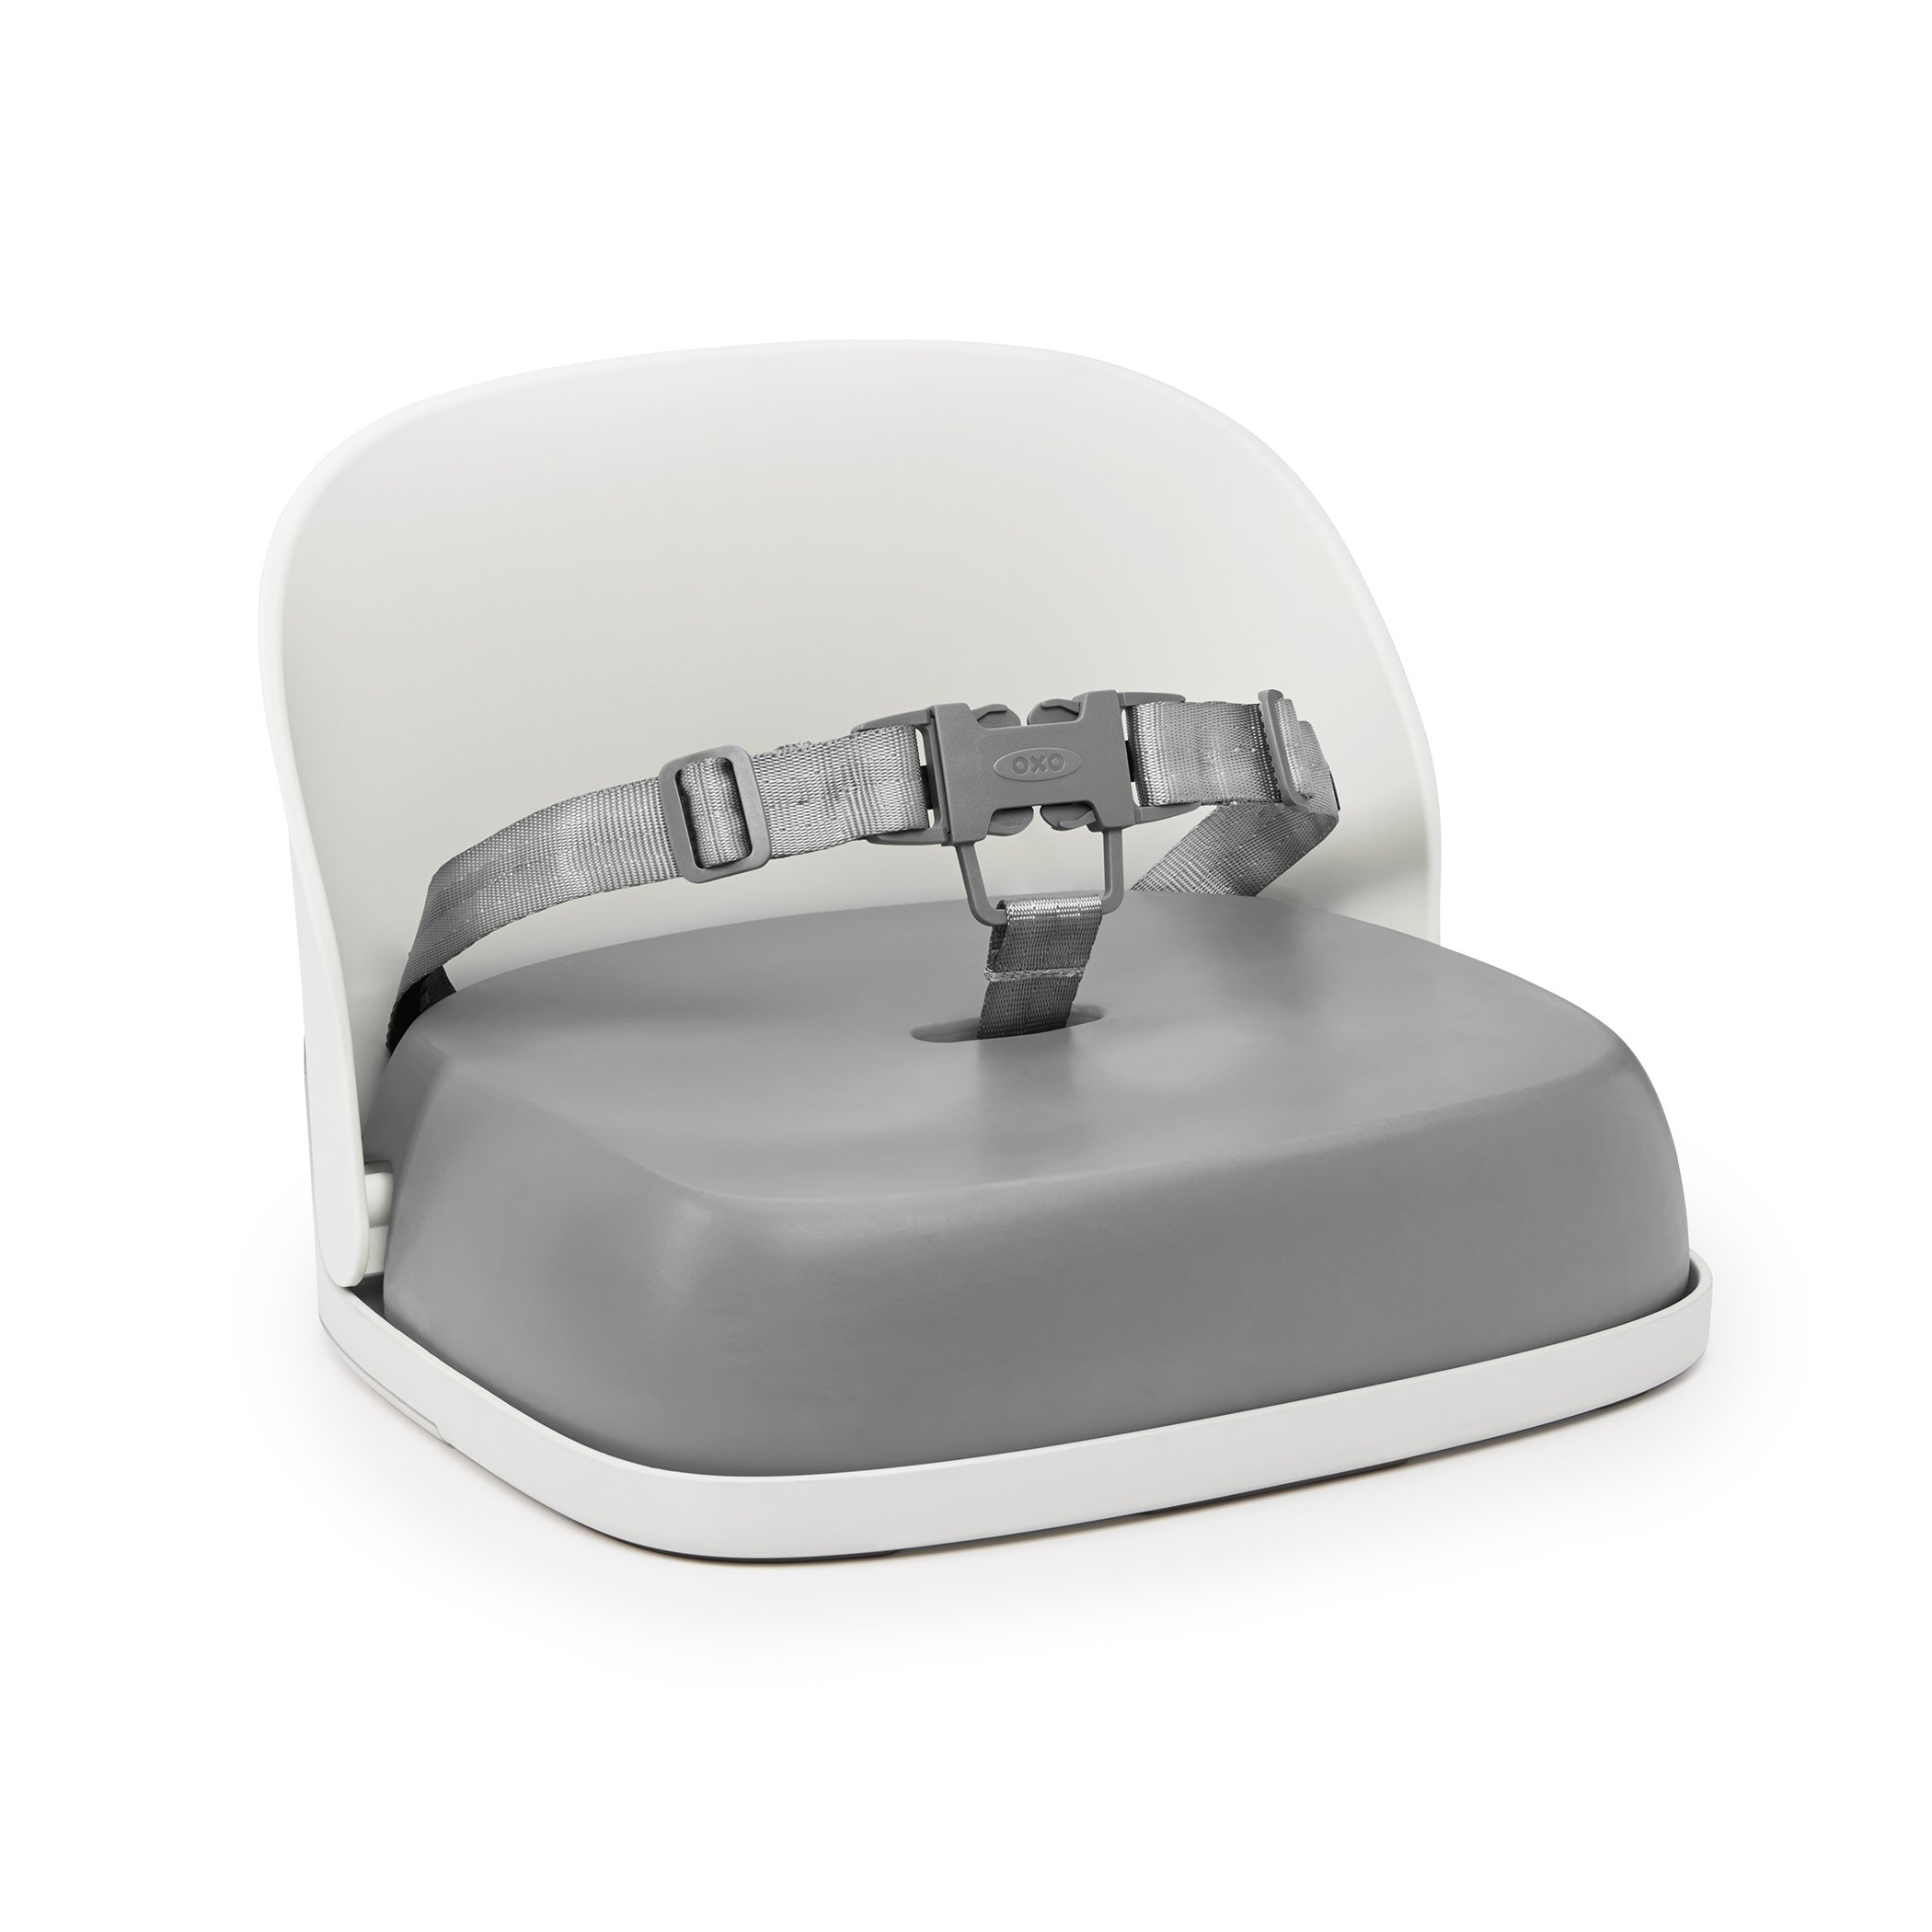 OXO Tot Perch Booster Seat with Straps, Gray